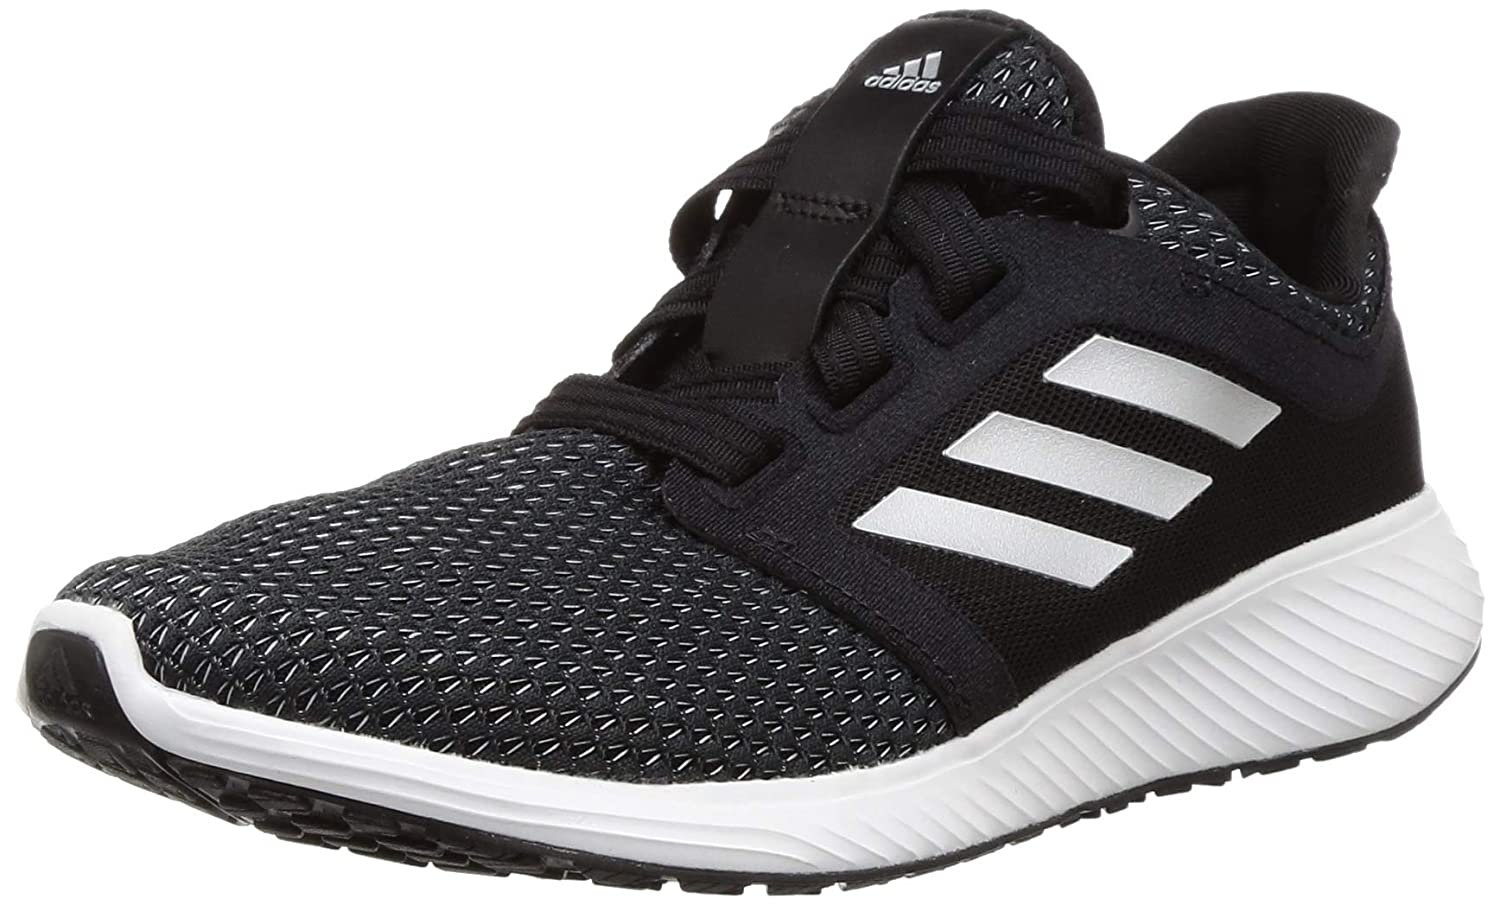 Edge Lux 3 W Running Shoes